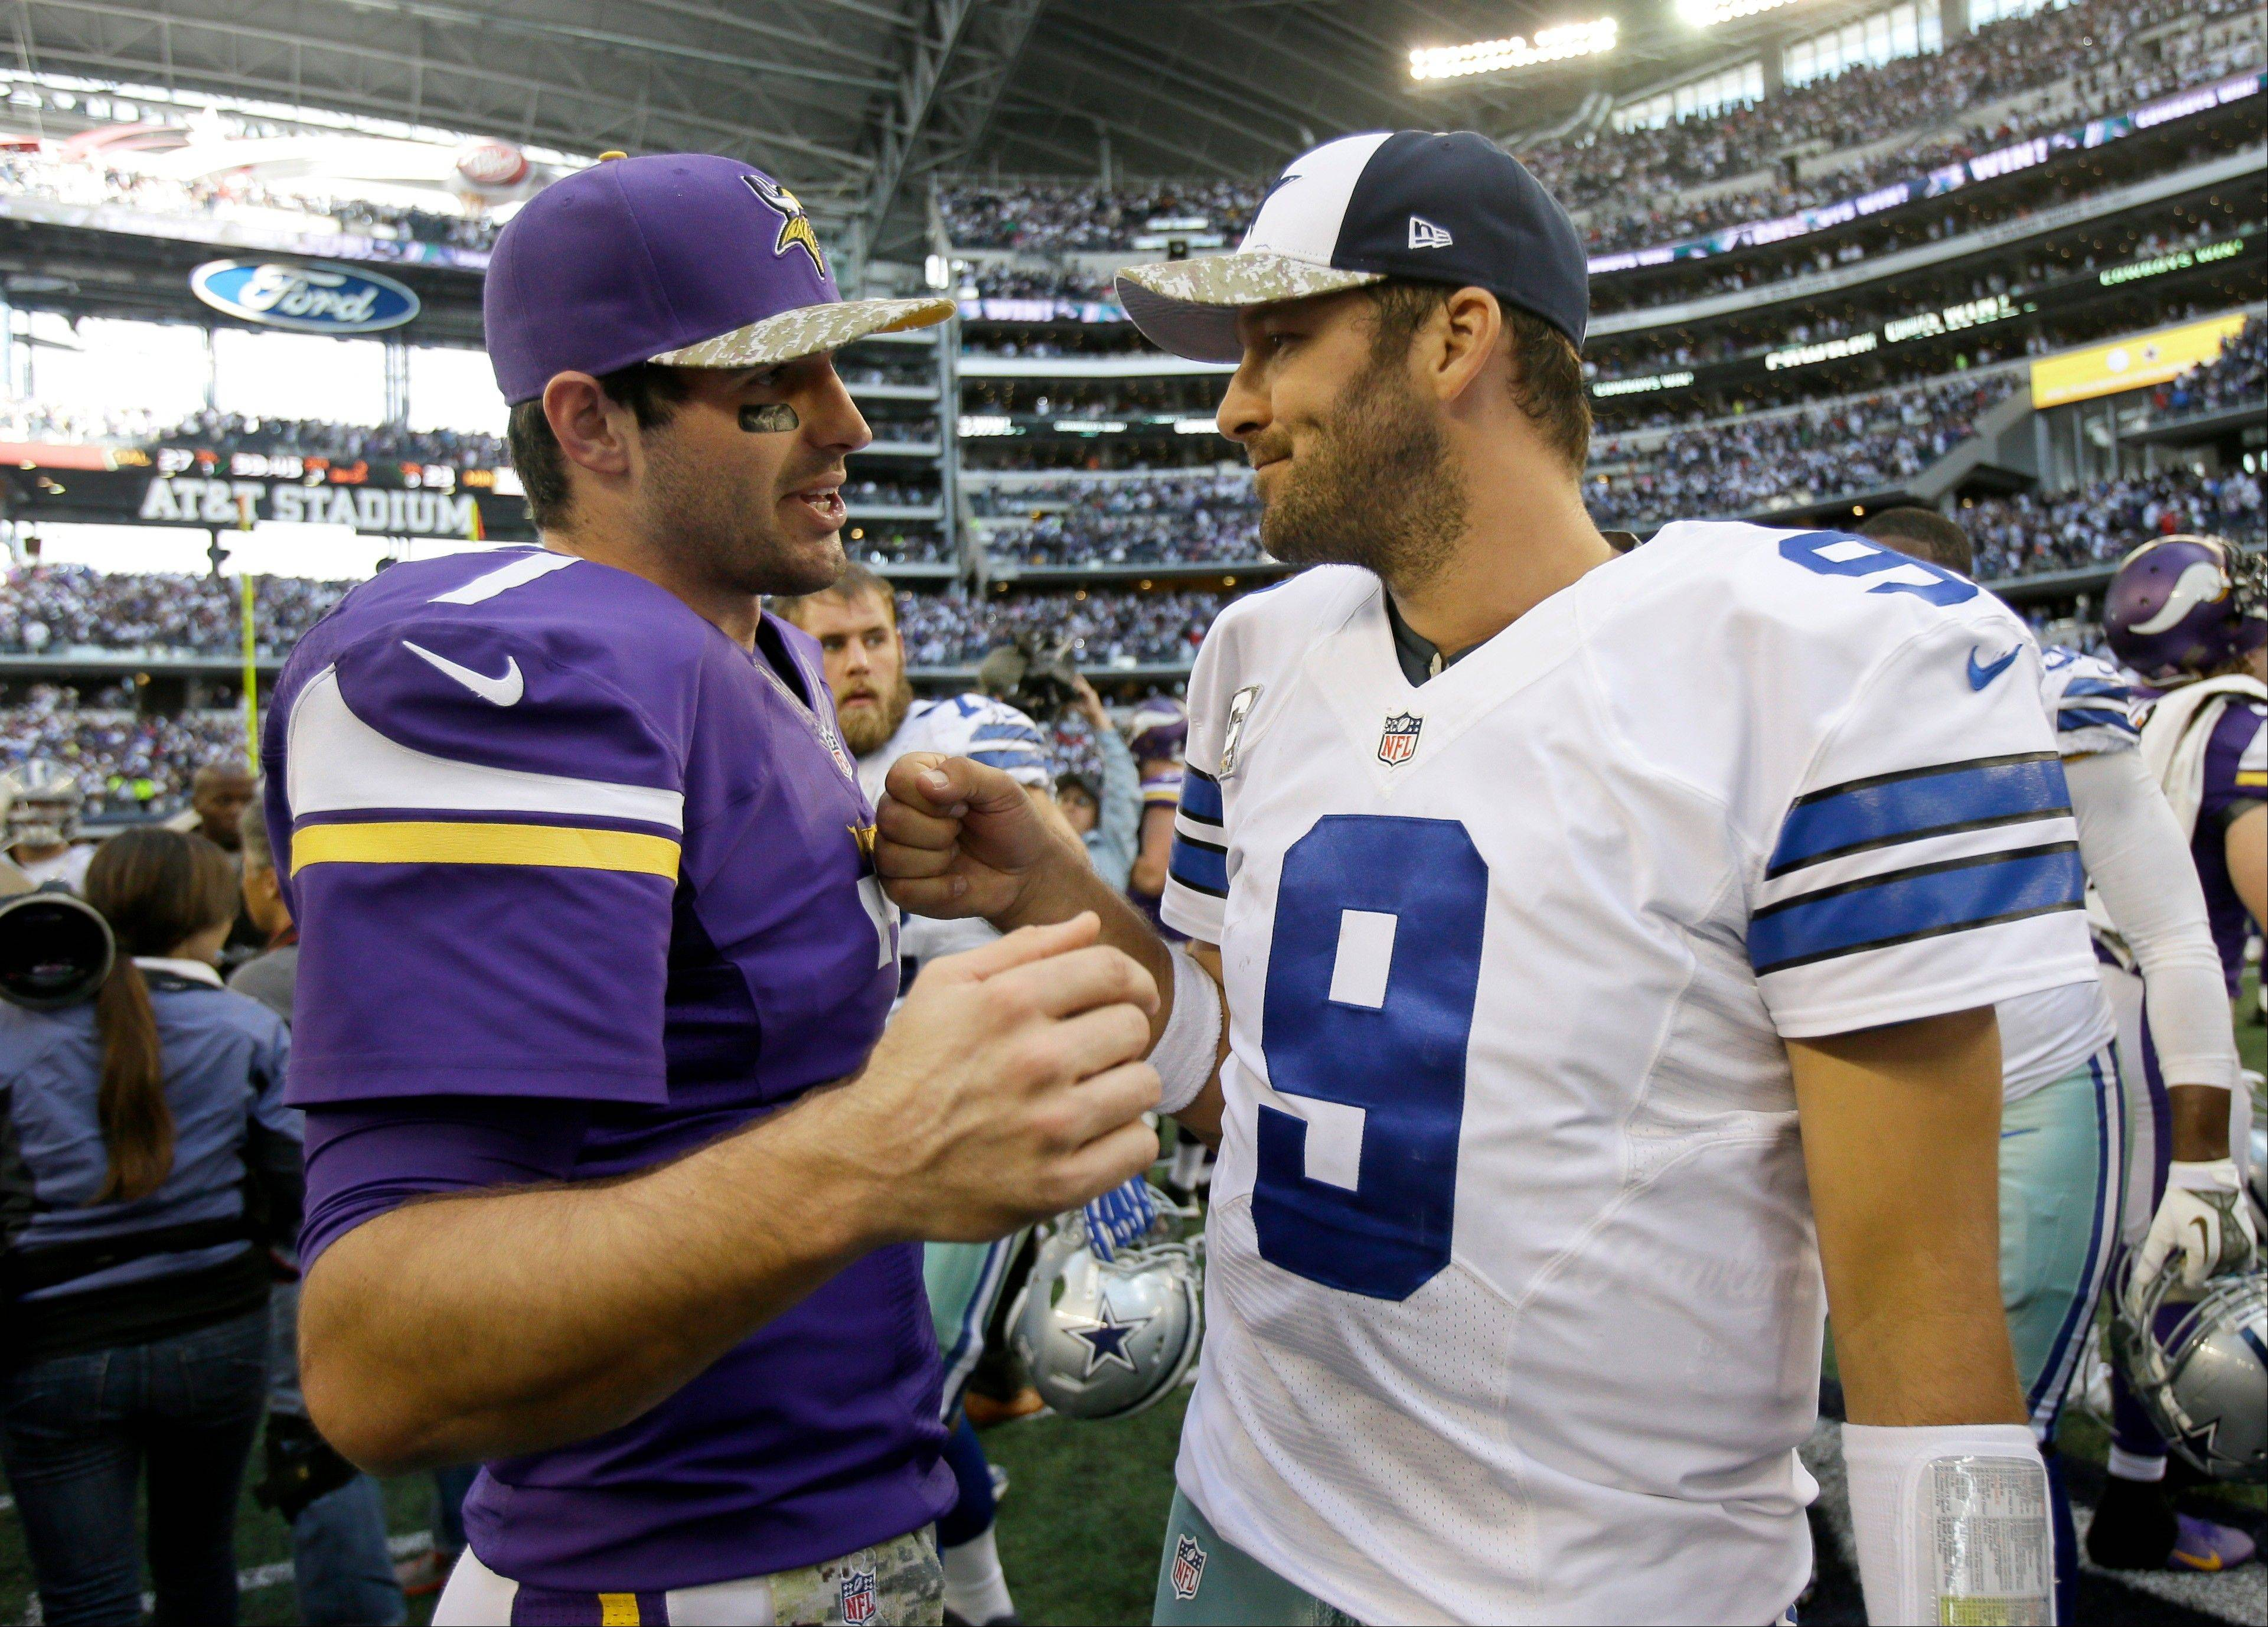 Minnesota Vikings� Christian Ponder (7) and Dallas Cowboys� Tony Romo (9) greet each other after their NFL football game, Sunday, Nov. 3, 2013, in Arlington, Texas. The Cowboys won 27-23.